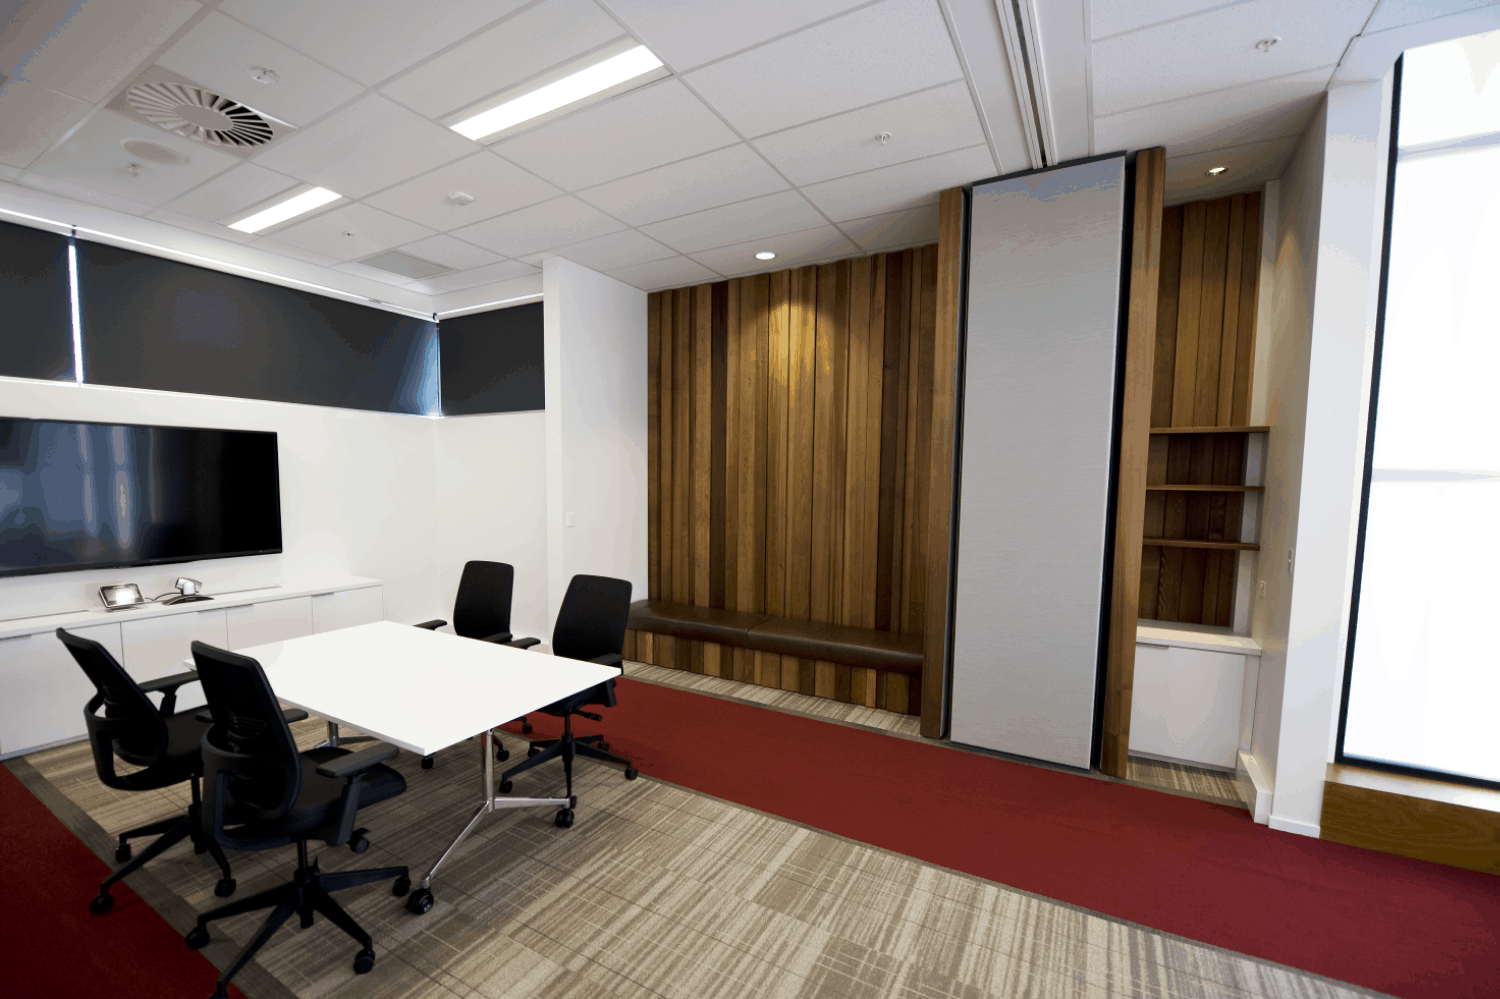 Jones Lang Lasalle in Christchurch office workplace meeting room design with table, chairs and TV